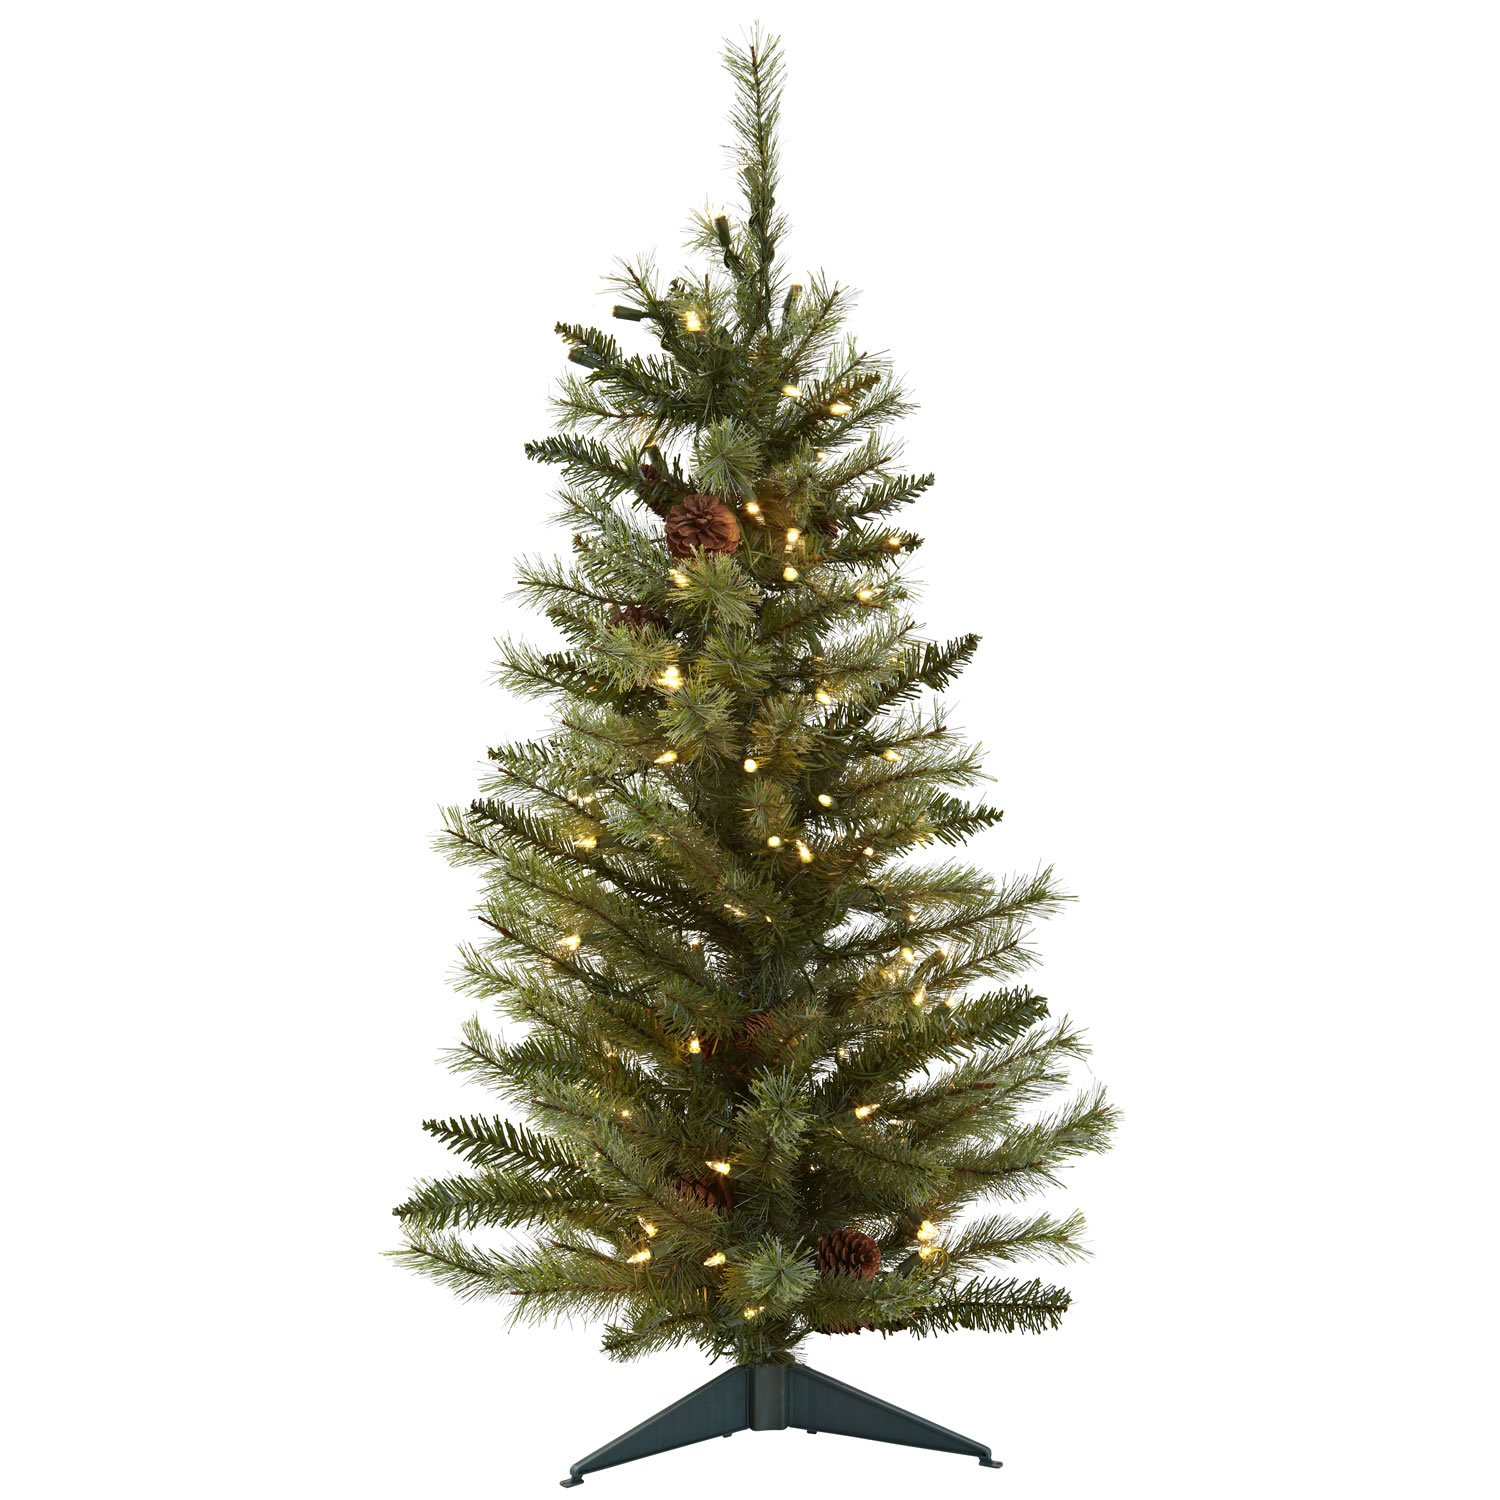 Amazon.com: Nearly Natural 5441 Christmas Tree with Pine Cones and ...